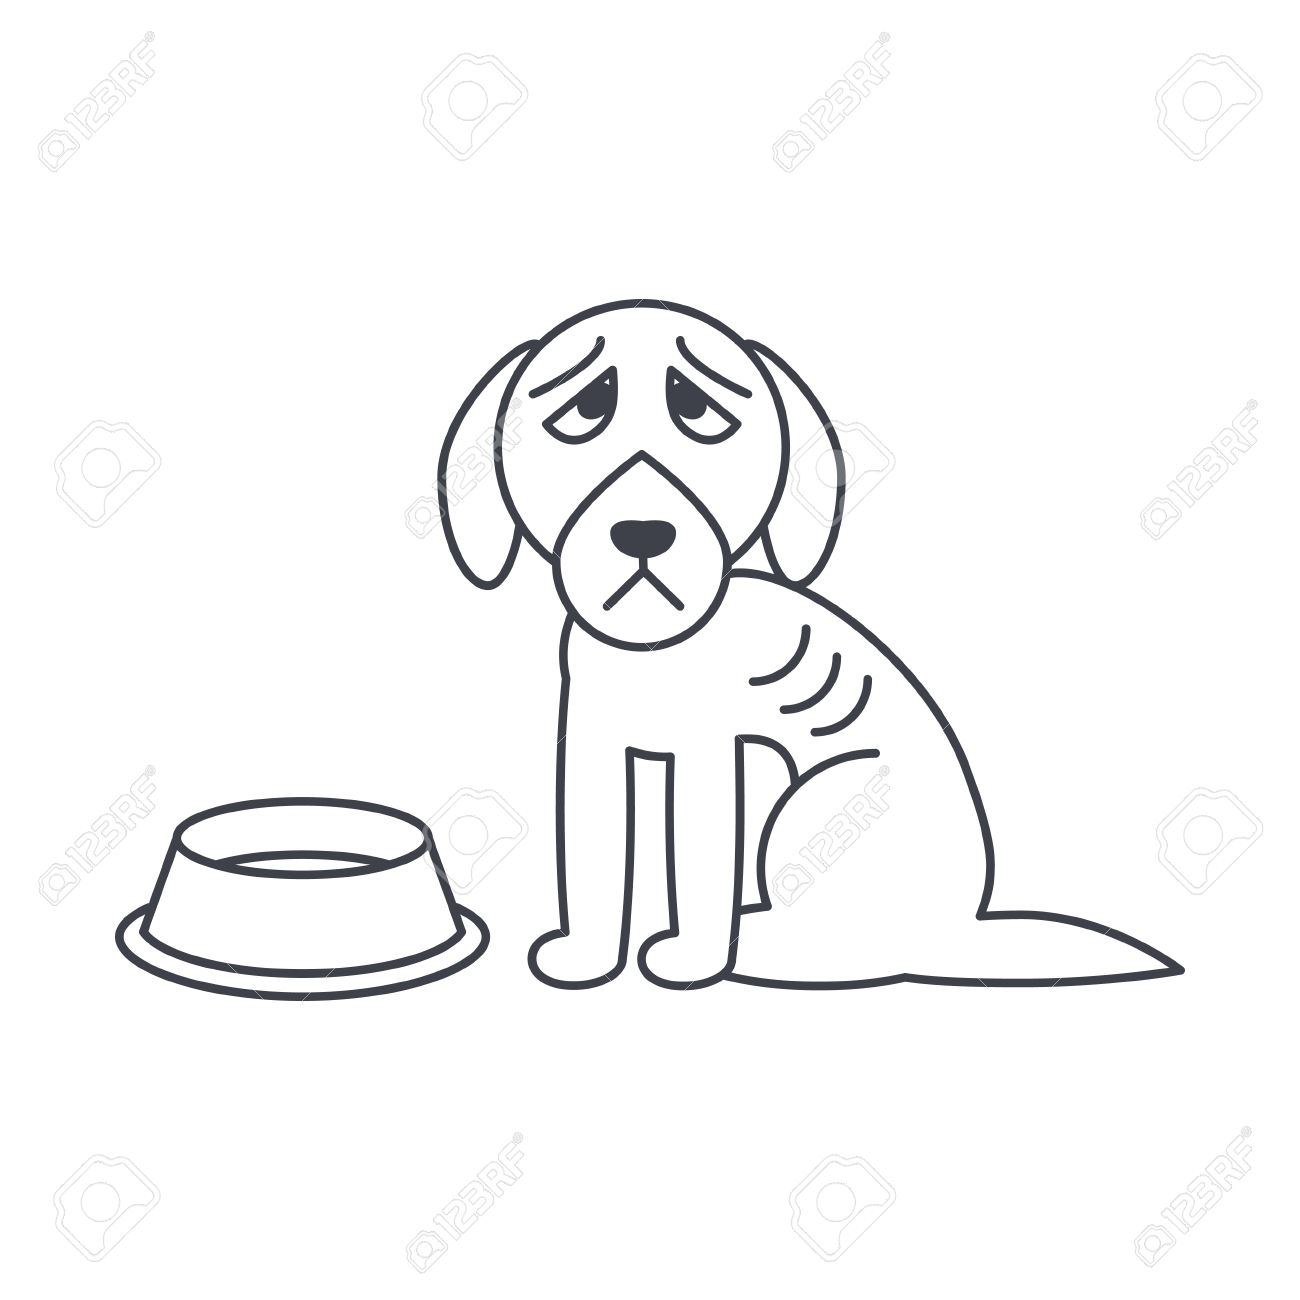 Hungry Dog Clipart.